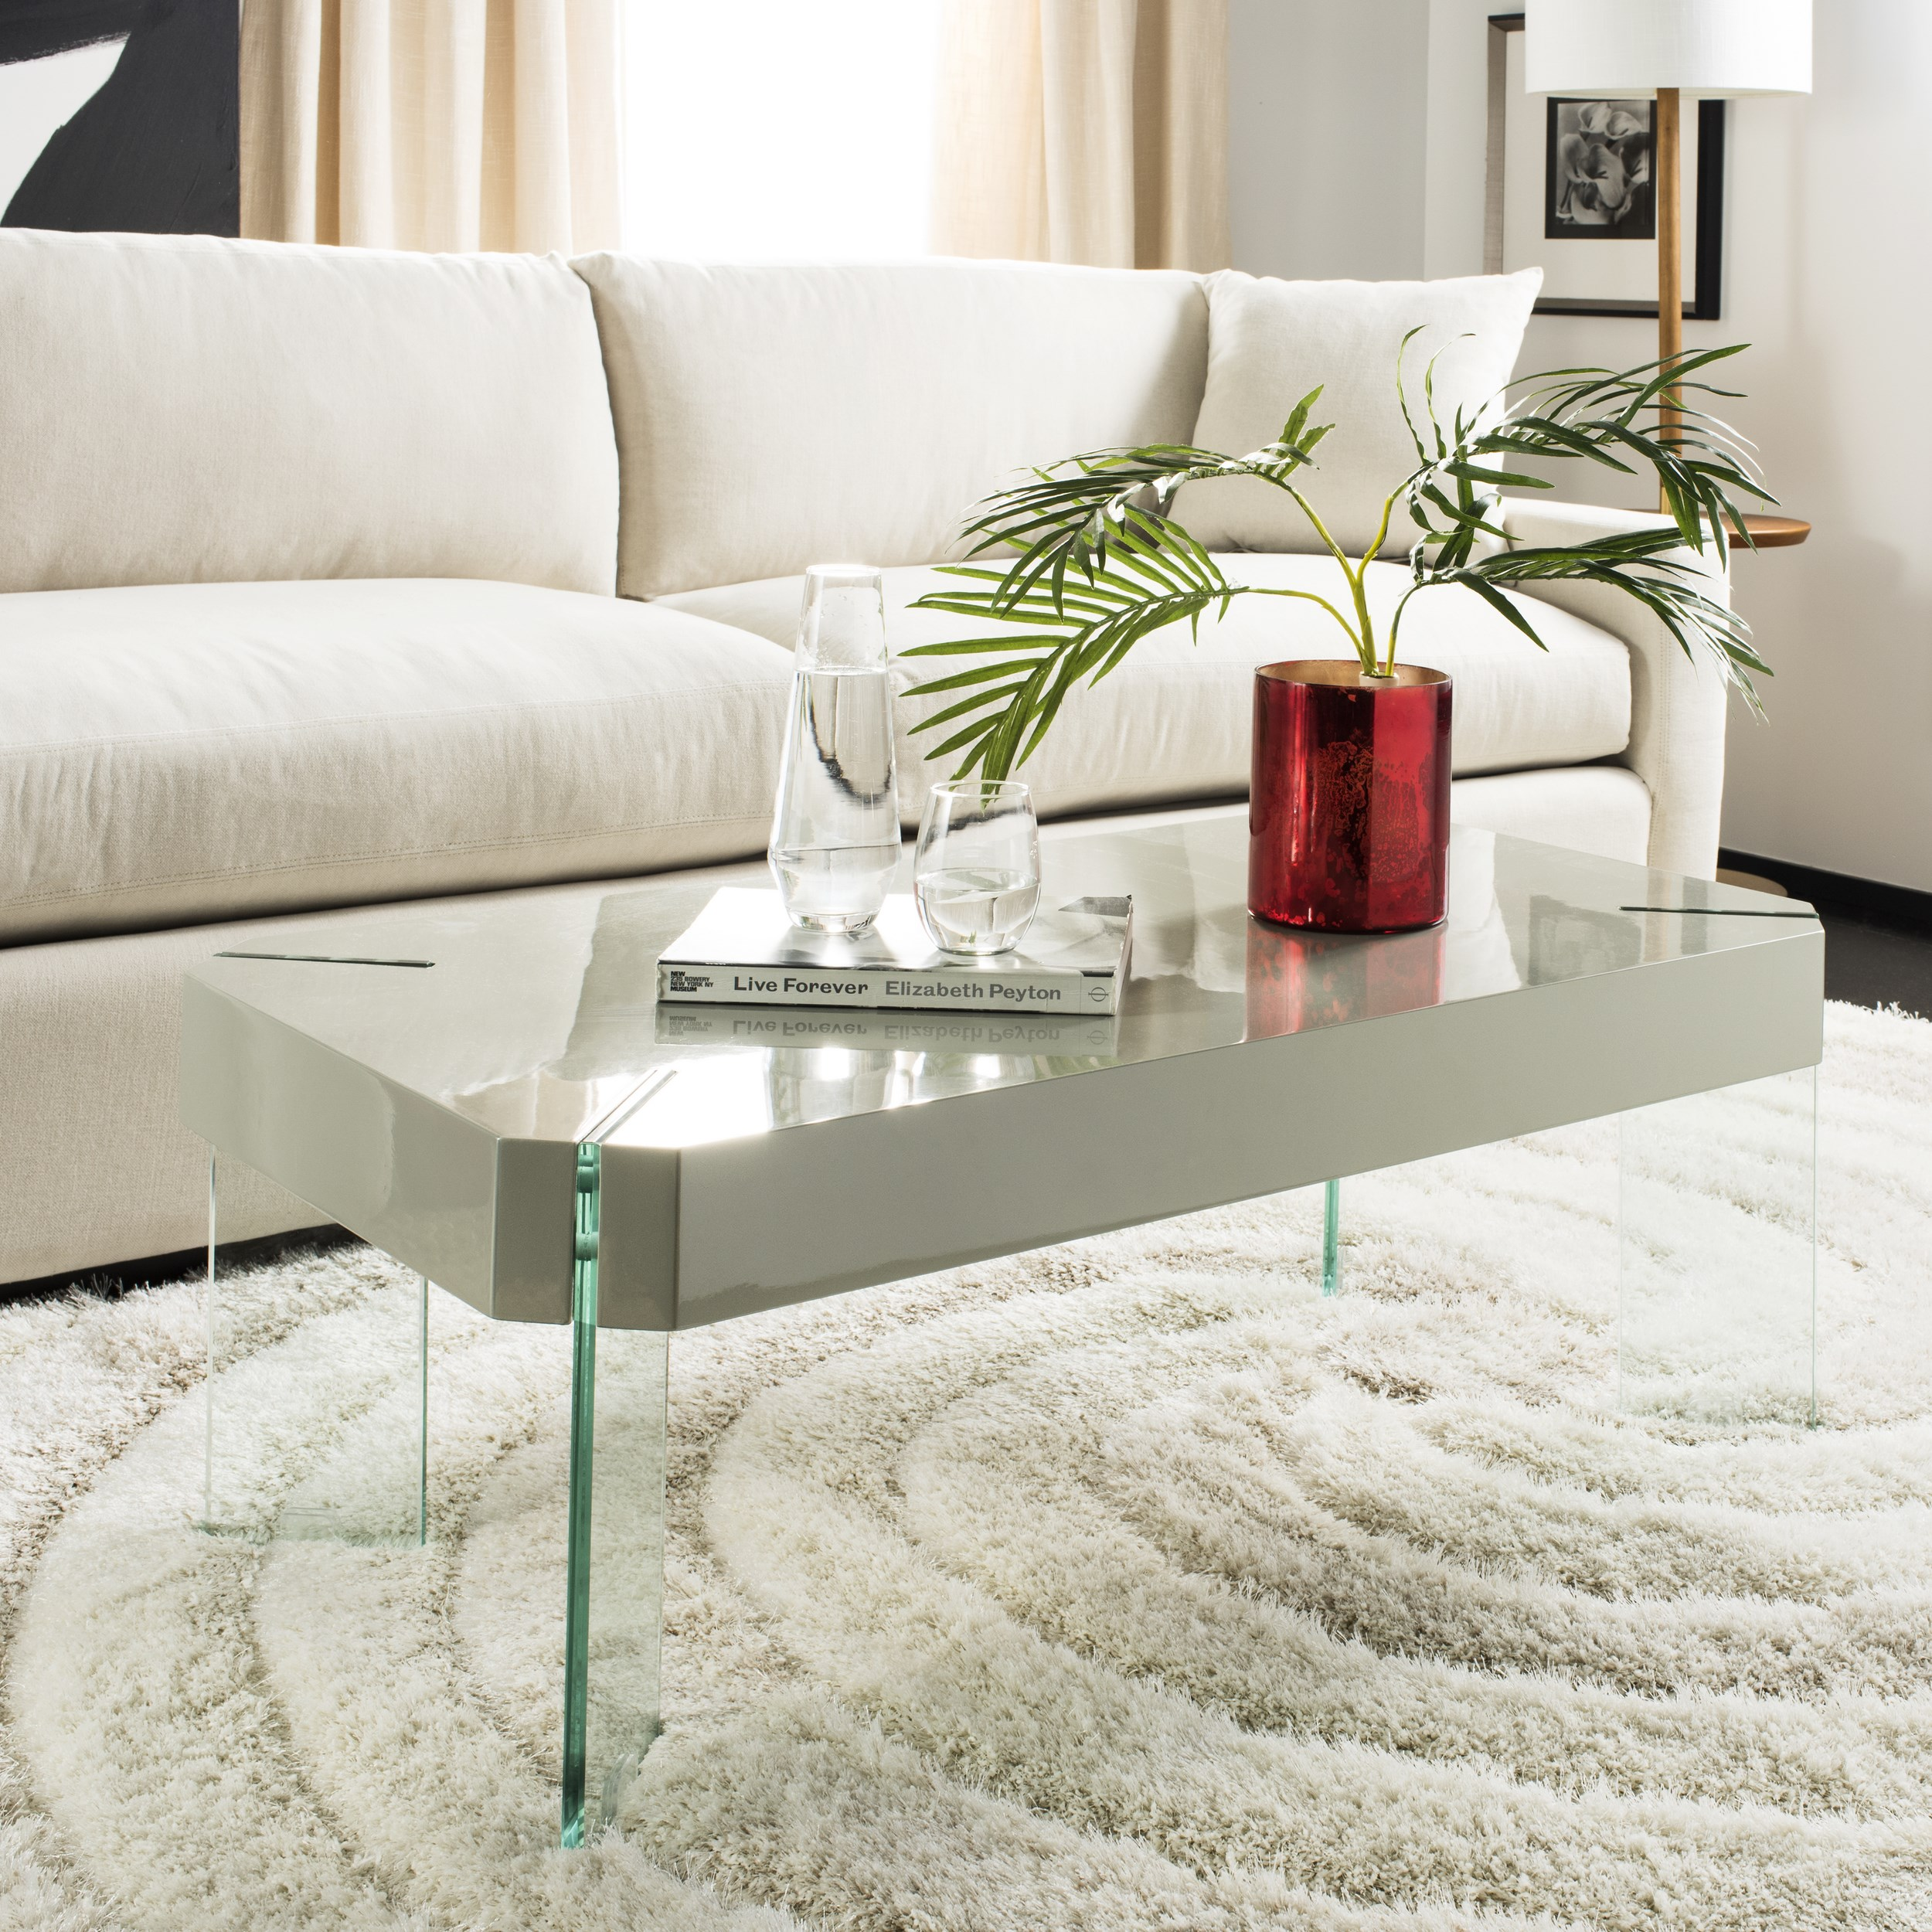 Safavieh Katelyn Rectangular Contemporary Glass Leg Coffee Table, Grey